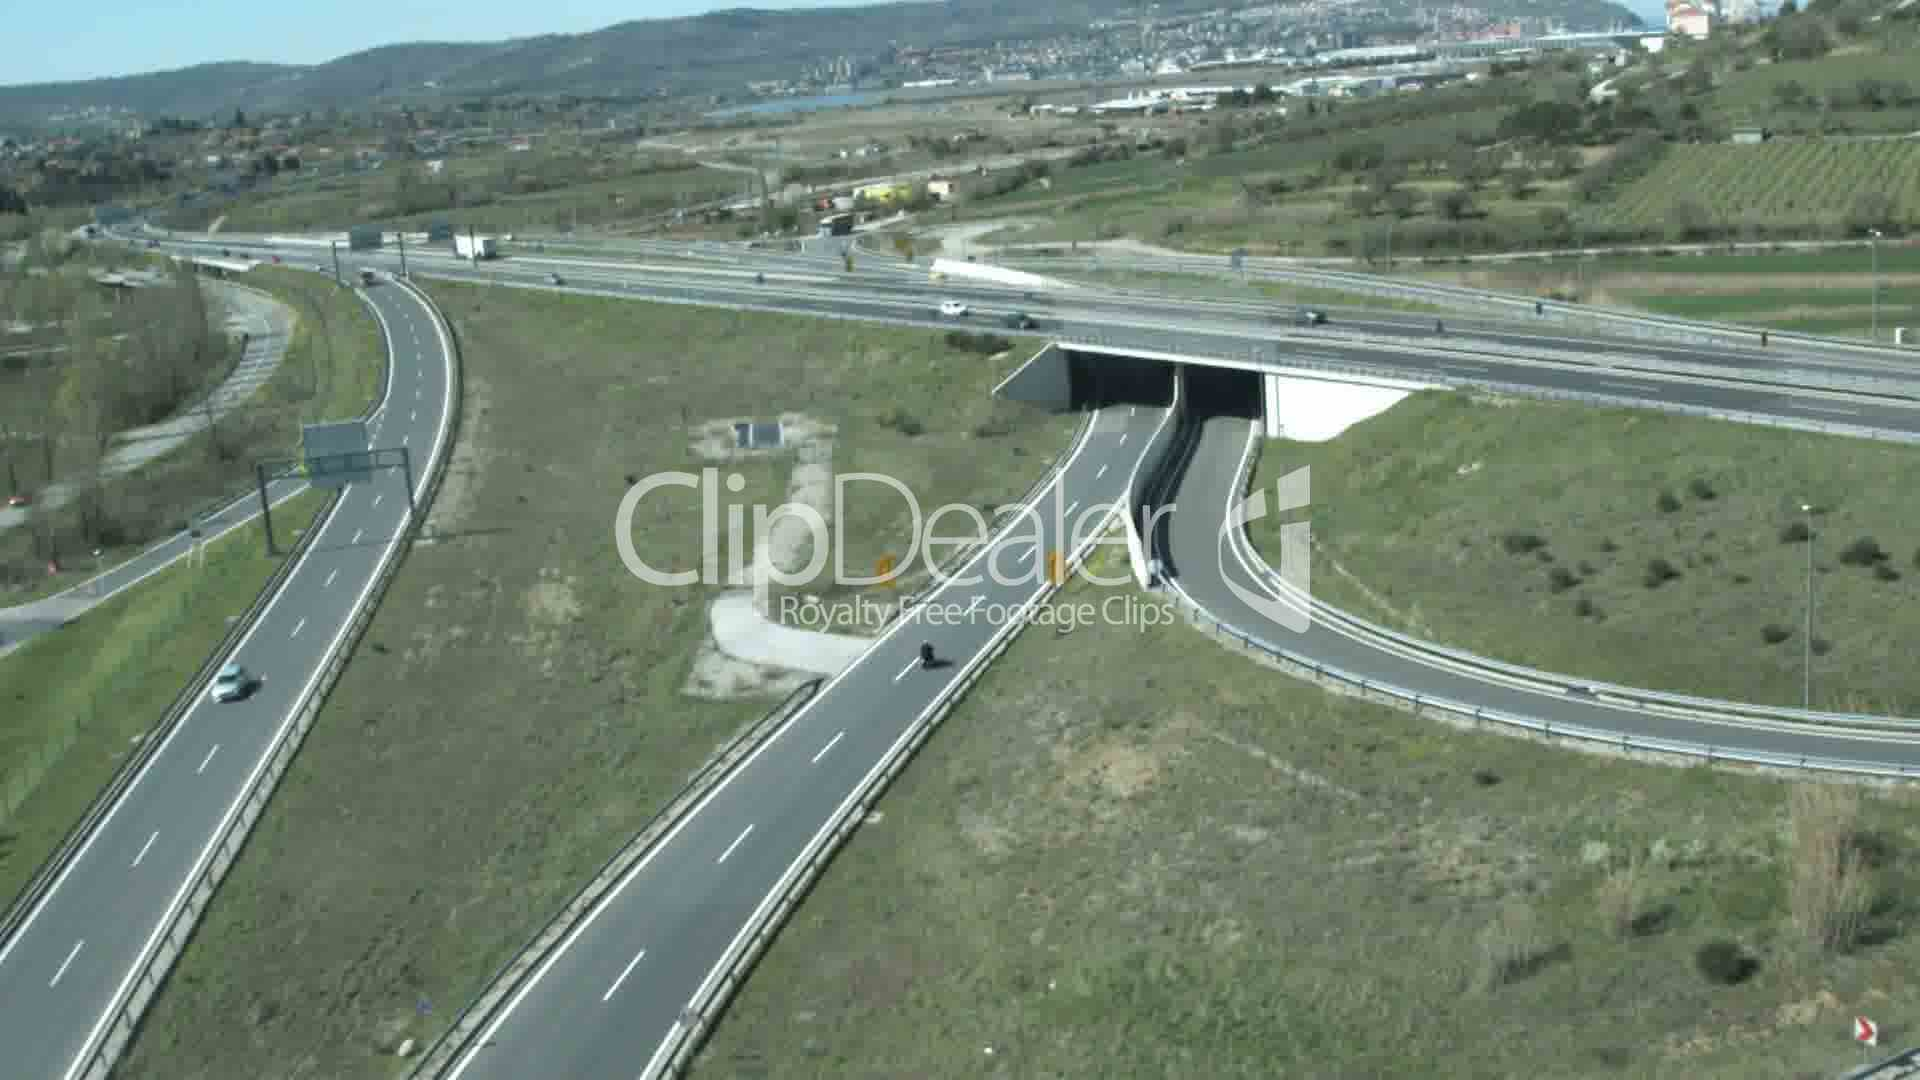 Highway flyover: Royalty-free video and stock footage